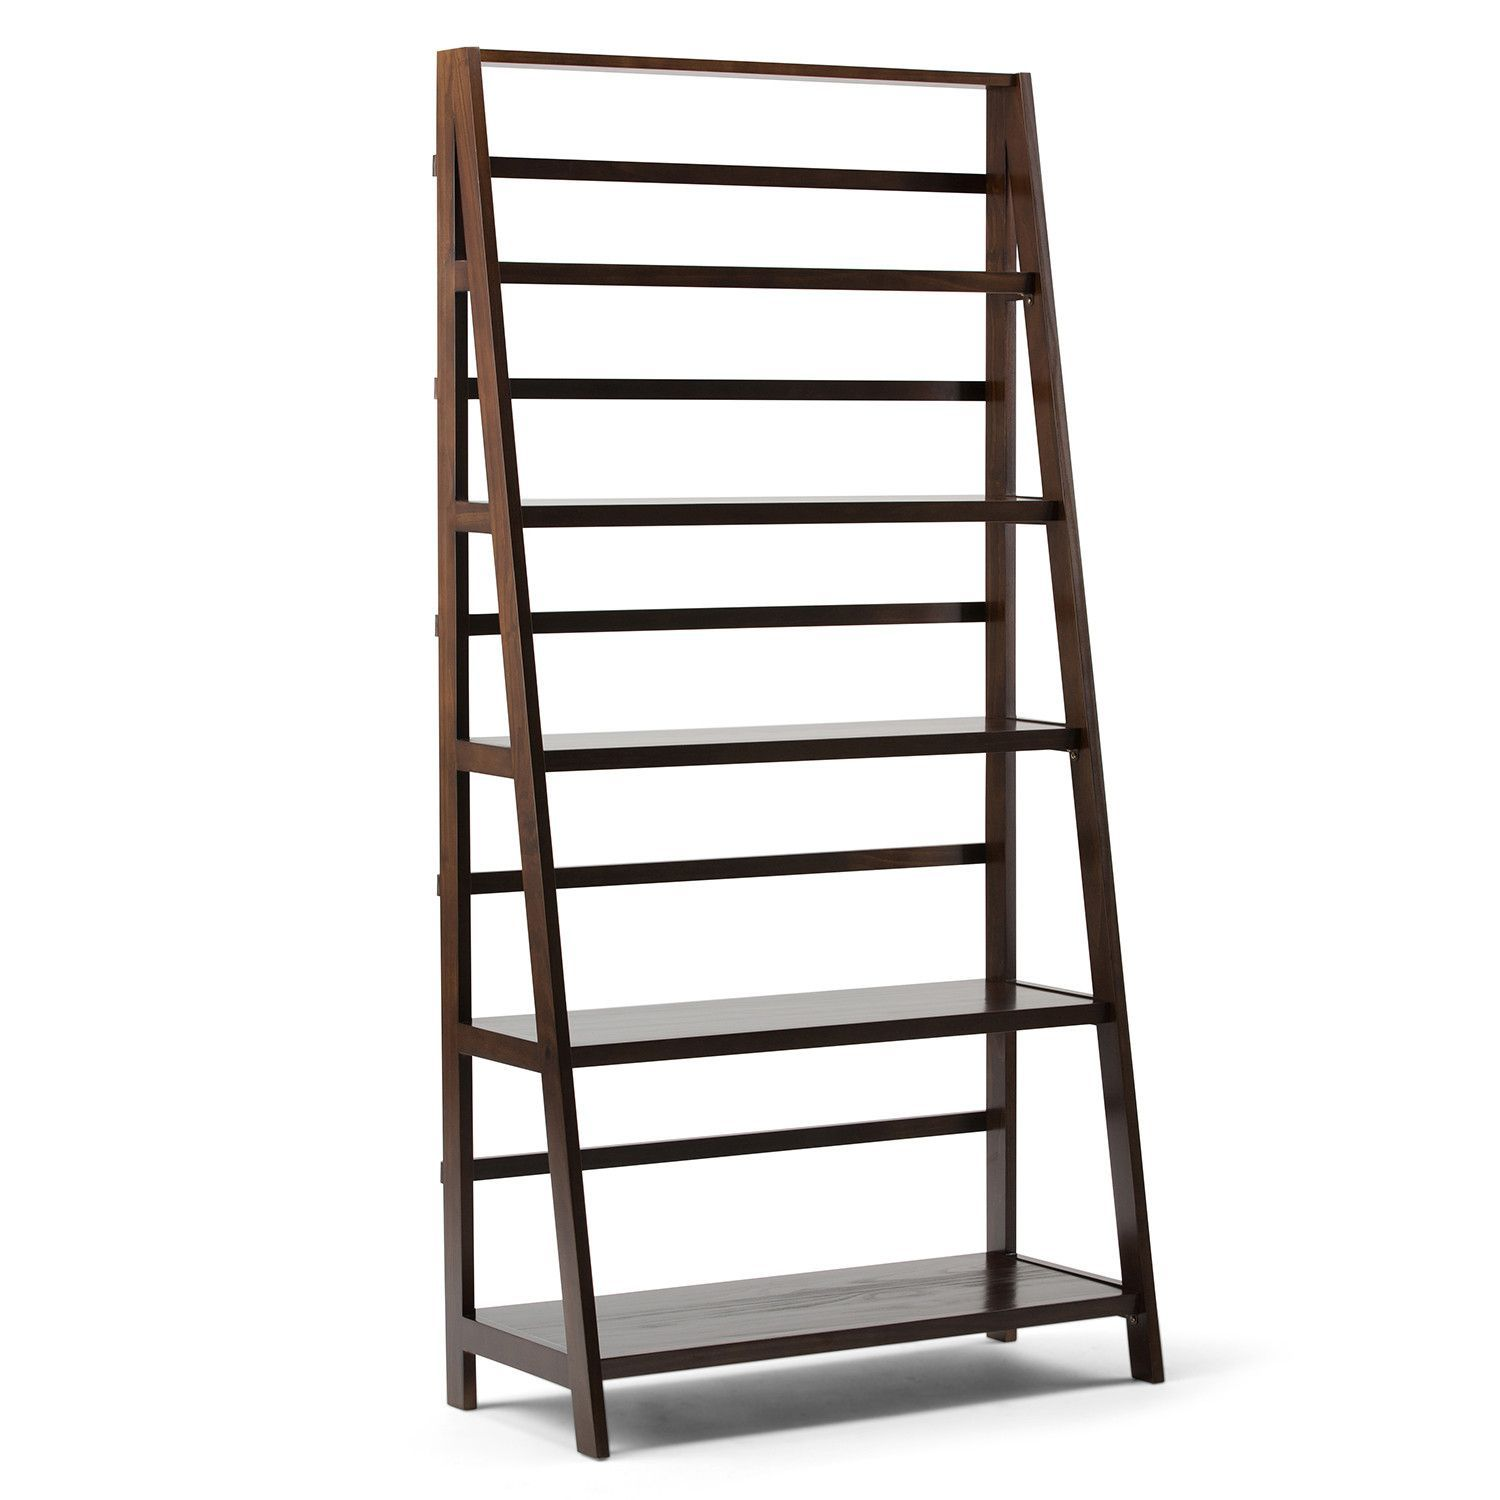 Acadian 72 X 36 Inch Wide Ladder Shelf Bookcase